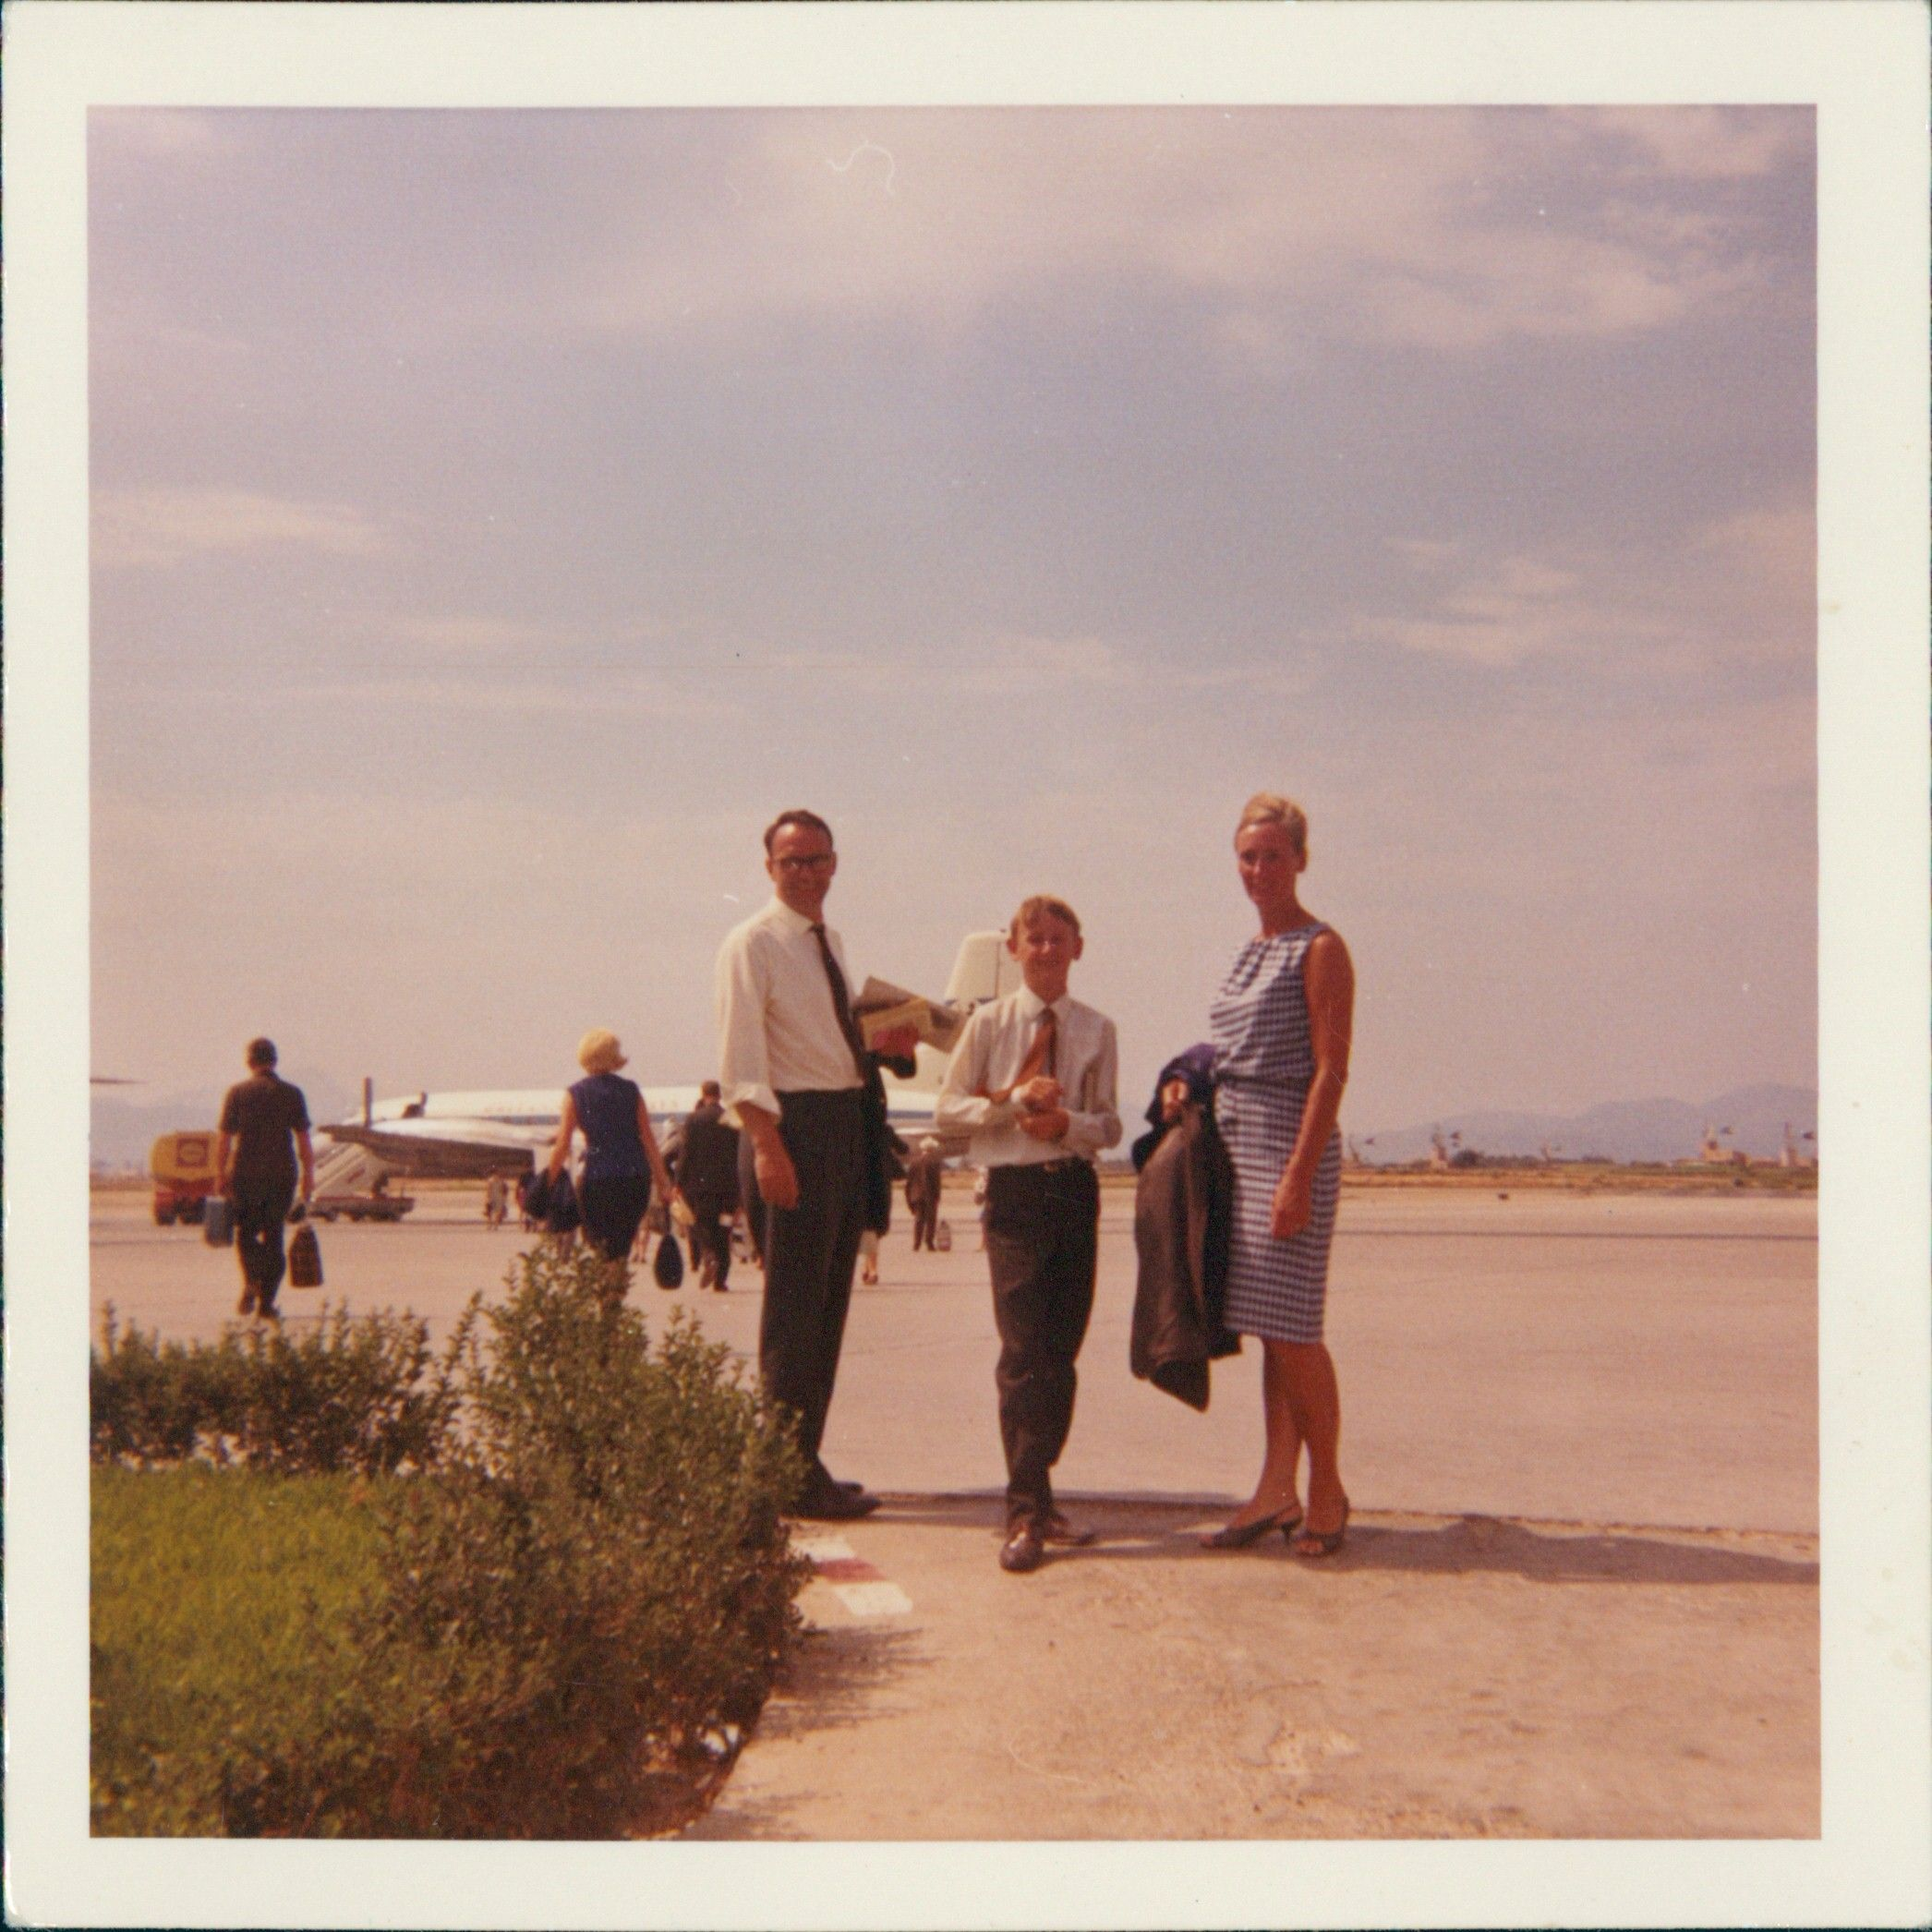 Digitised image of an old photo from the 70s showing a family on the tarmac at an airport.